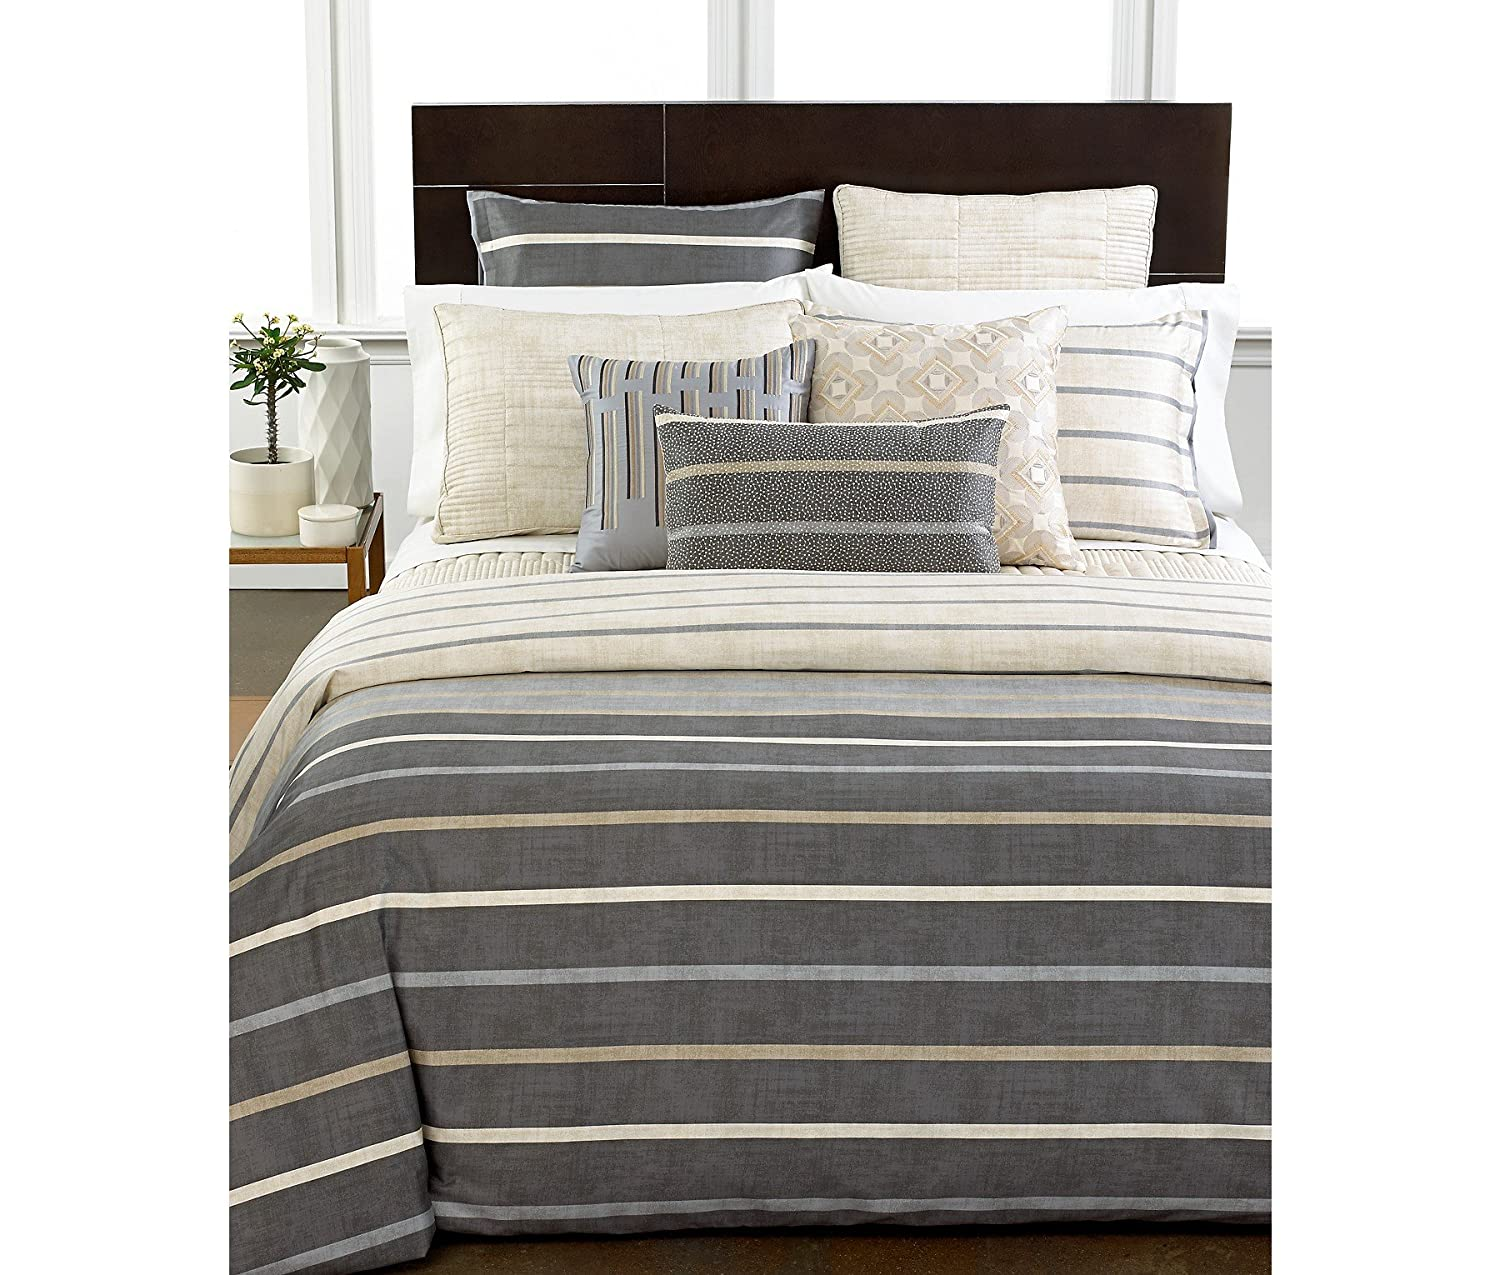 amazoncom hotel collection modern colonnade queen duvet cover  - amazoncom hotel collection modern colonnade queen duvet cover home kitchen